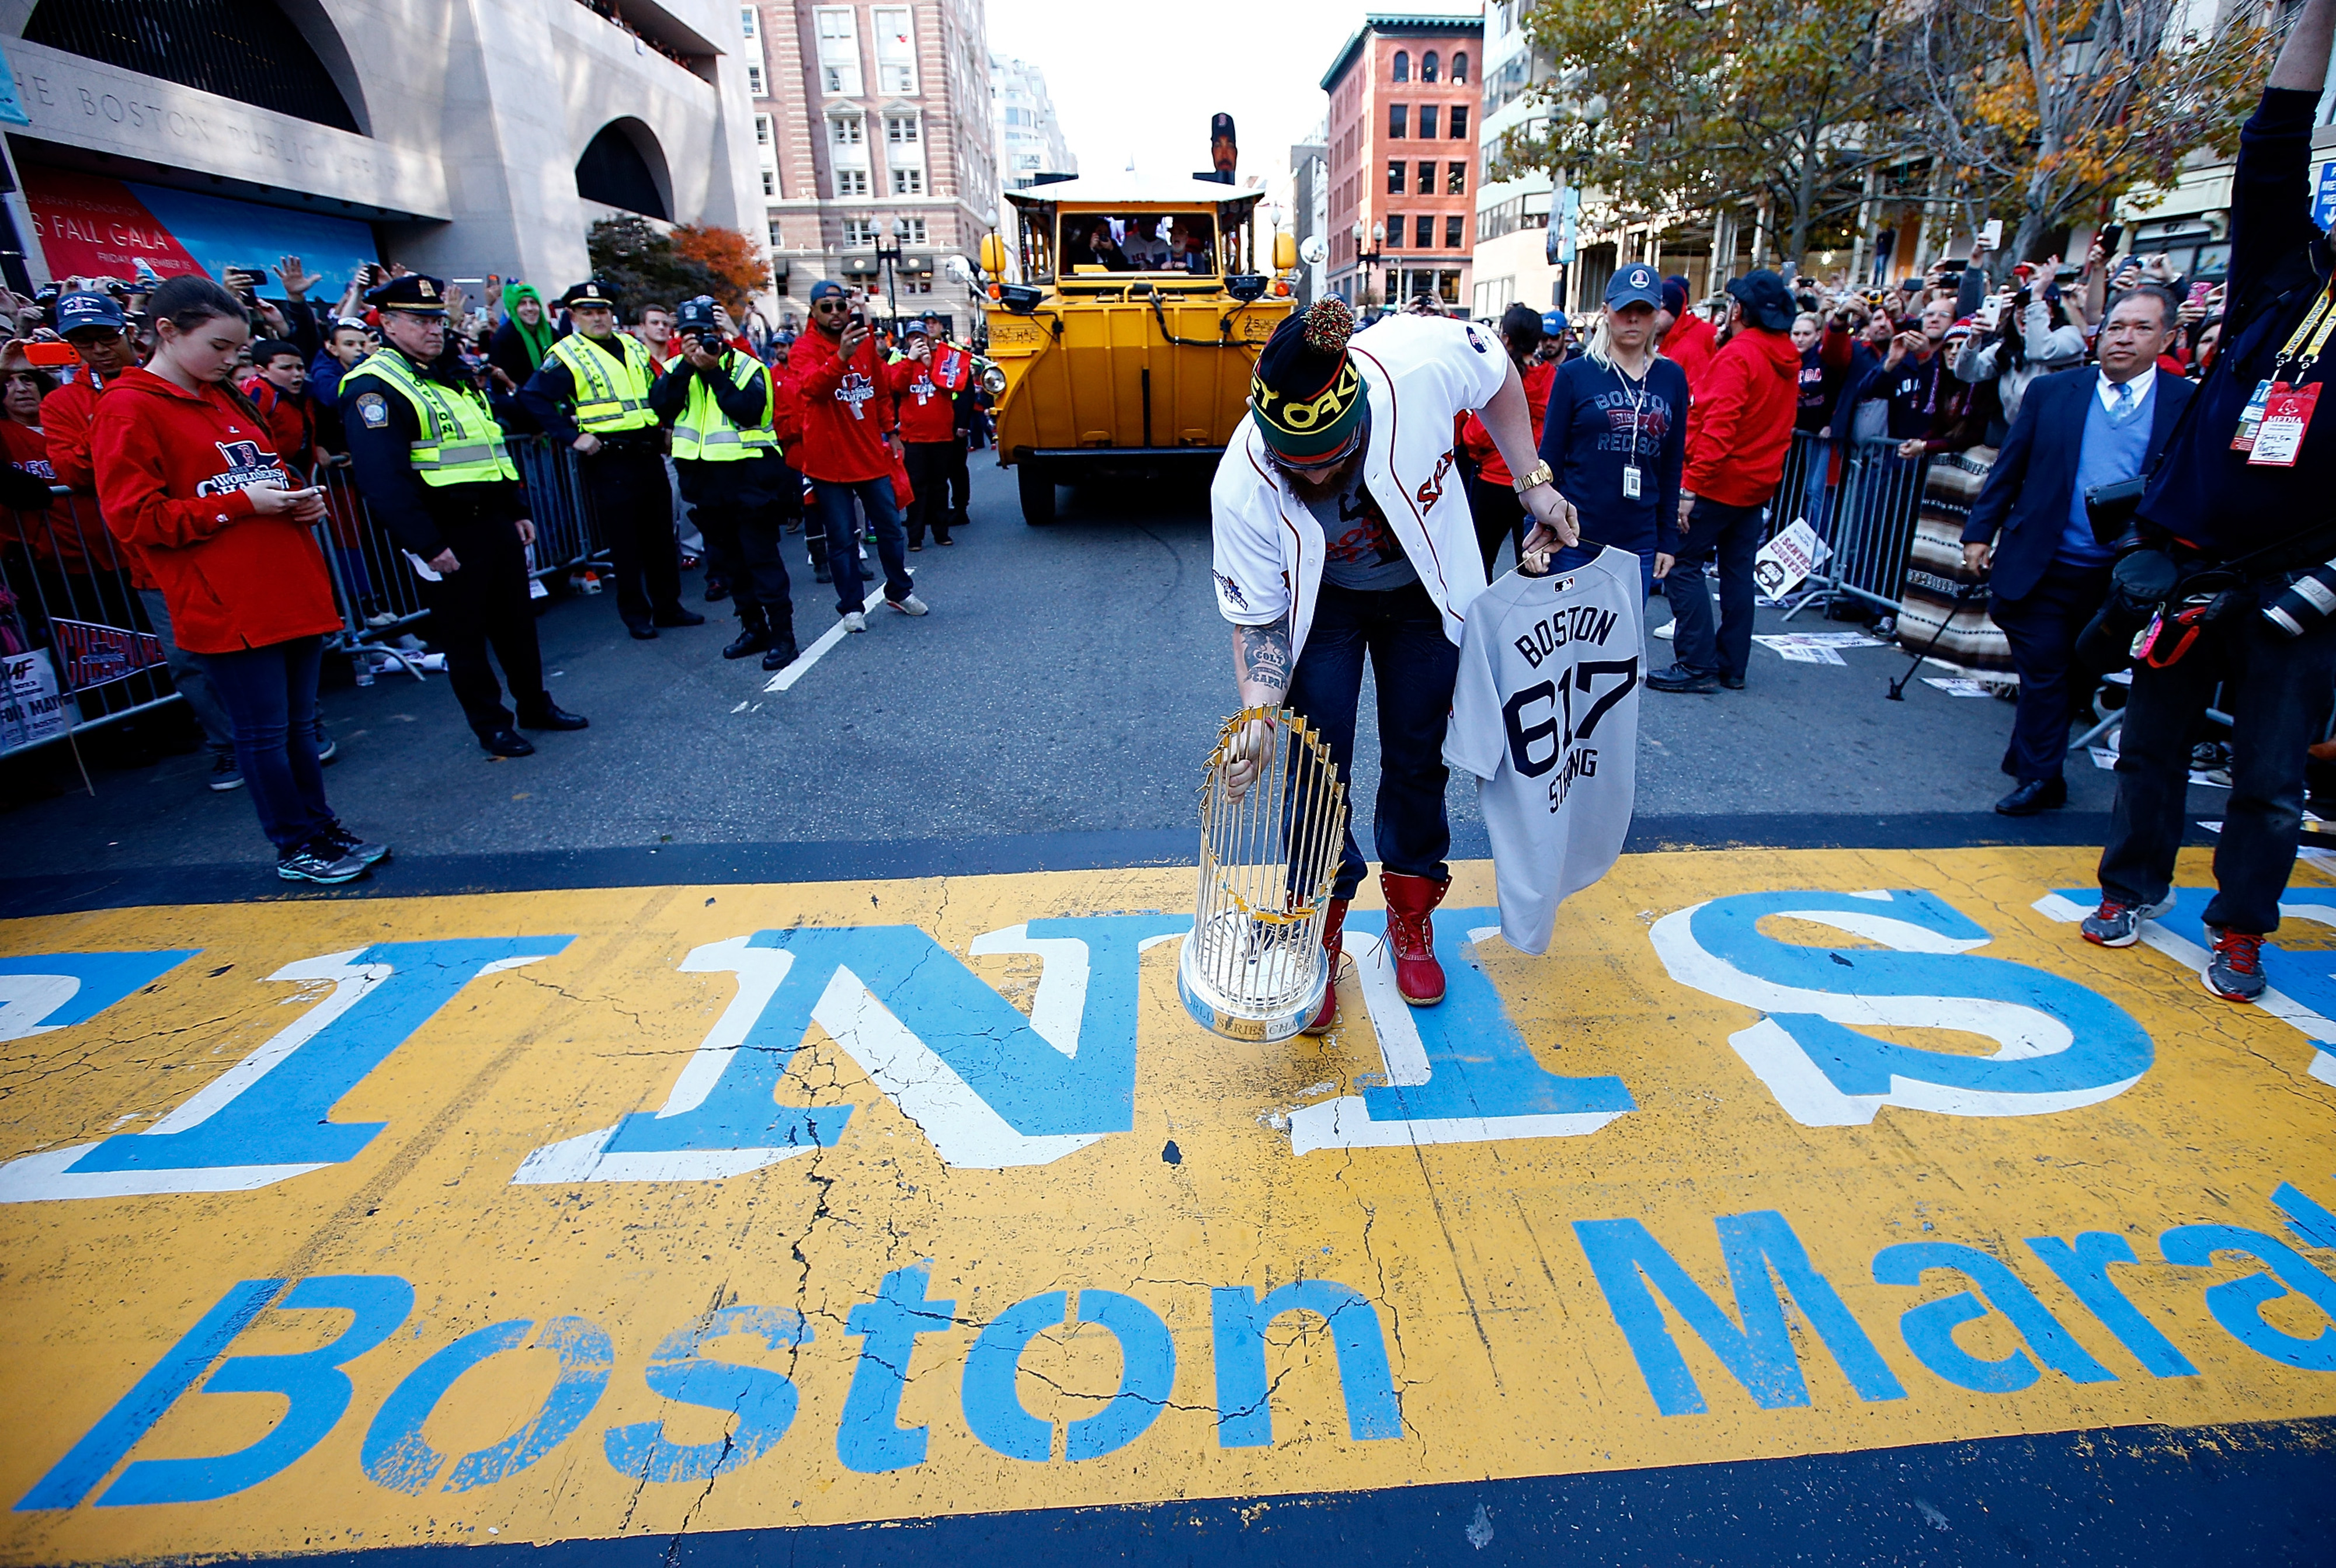 Jonny Gomes of the Boston Red Sox lays the World Series trophy onto the finish line of the Boston Marathon on Boylston Street during the World Series victory parade on November 2, 2013 in Boston, Massachusetts.